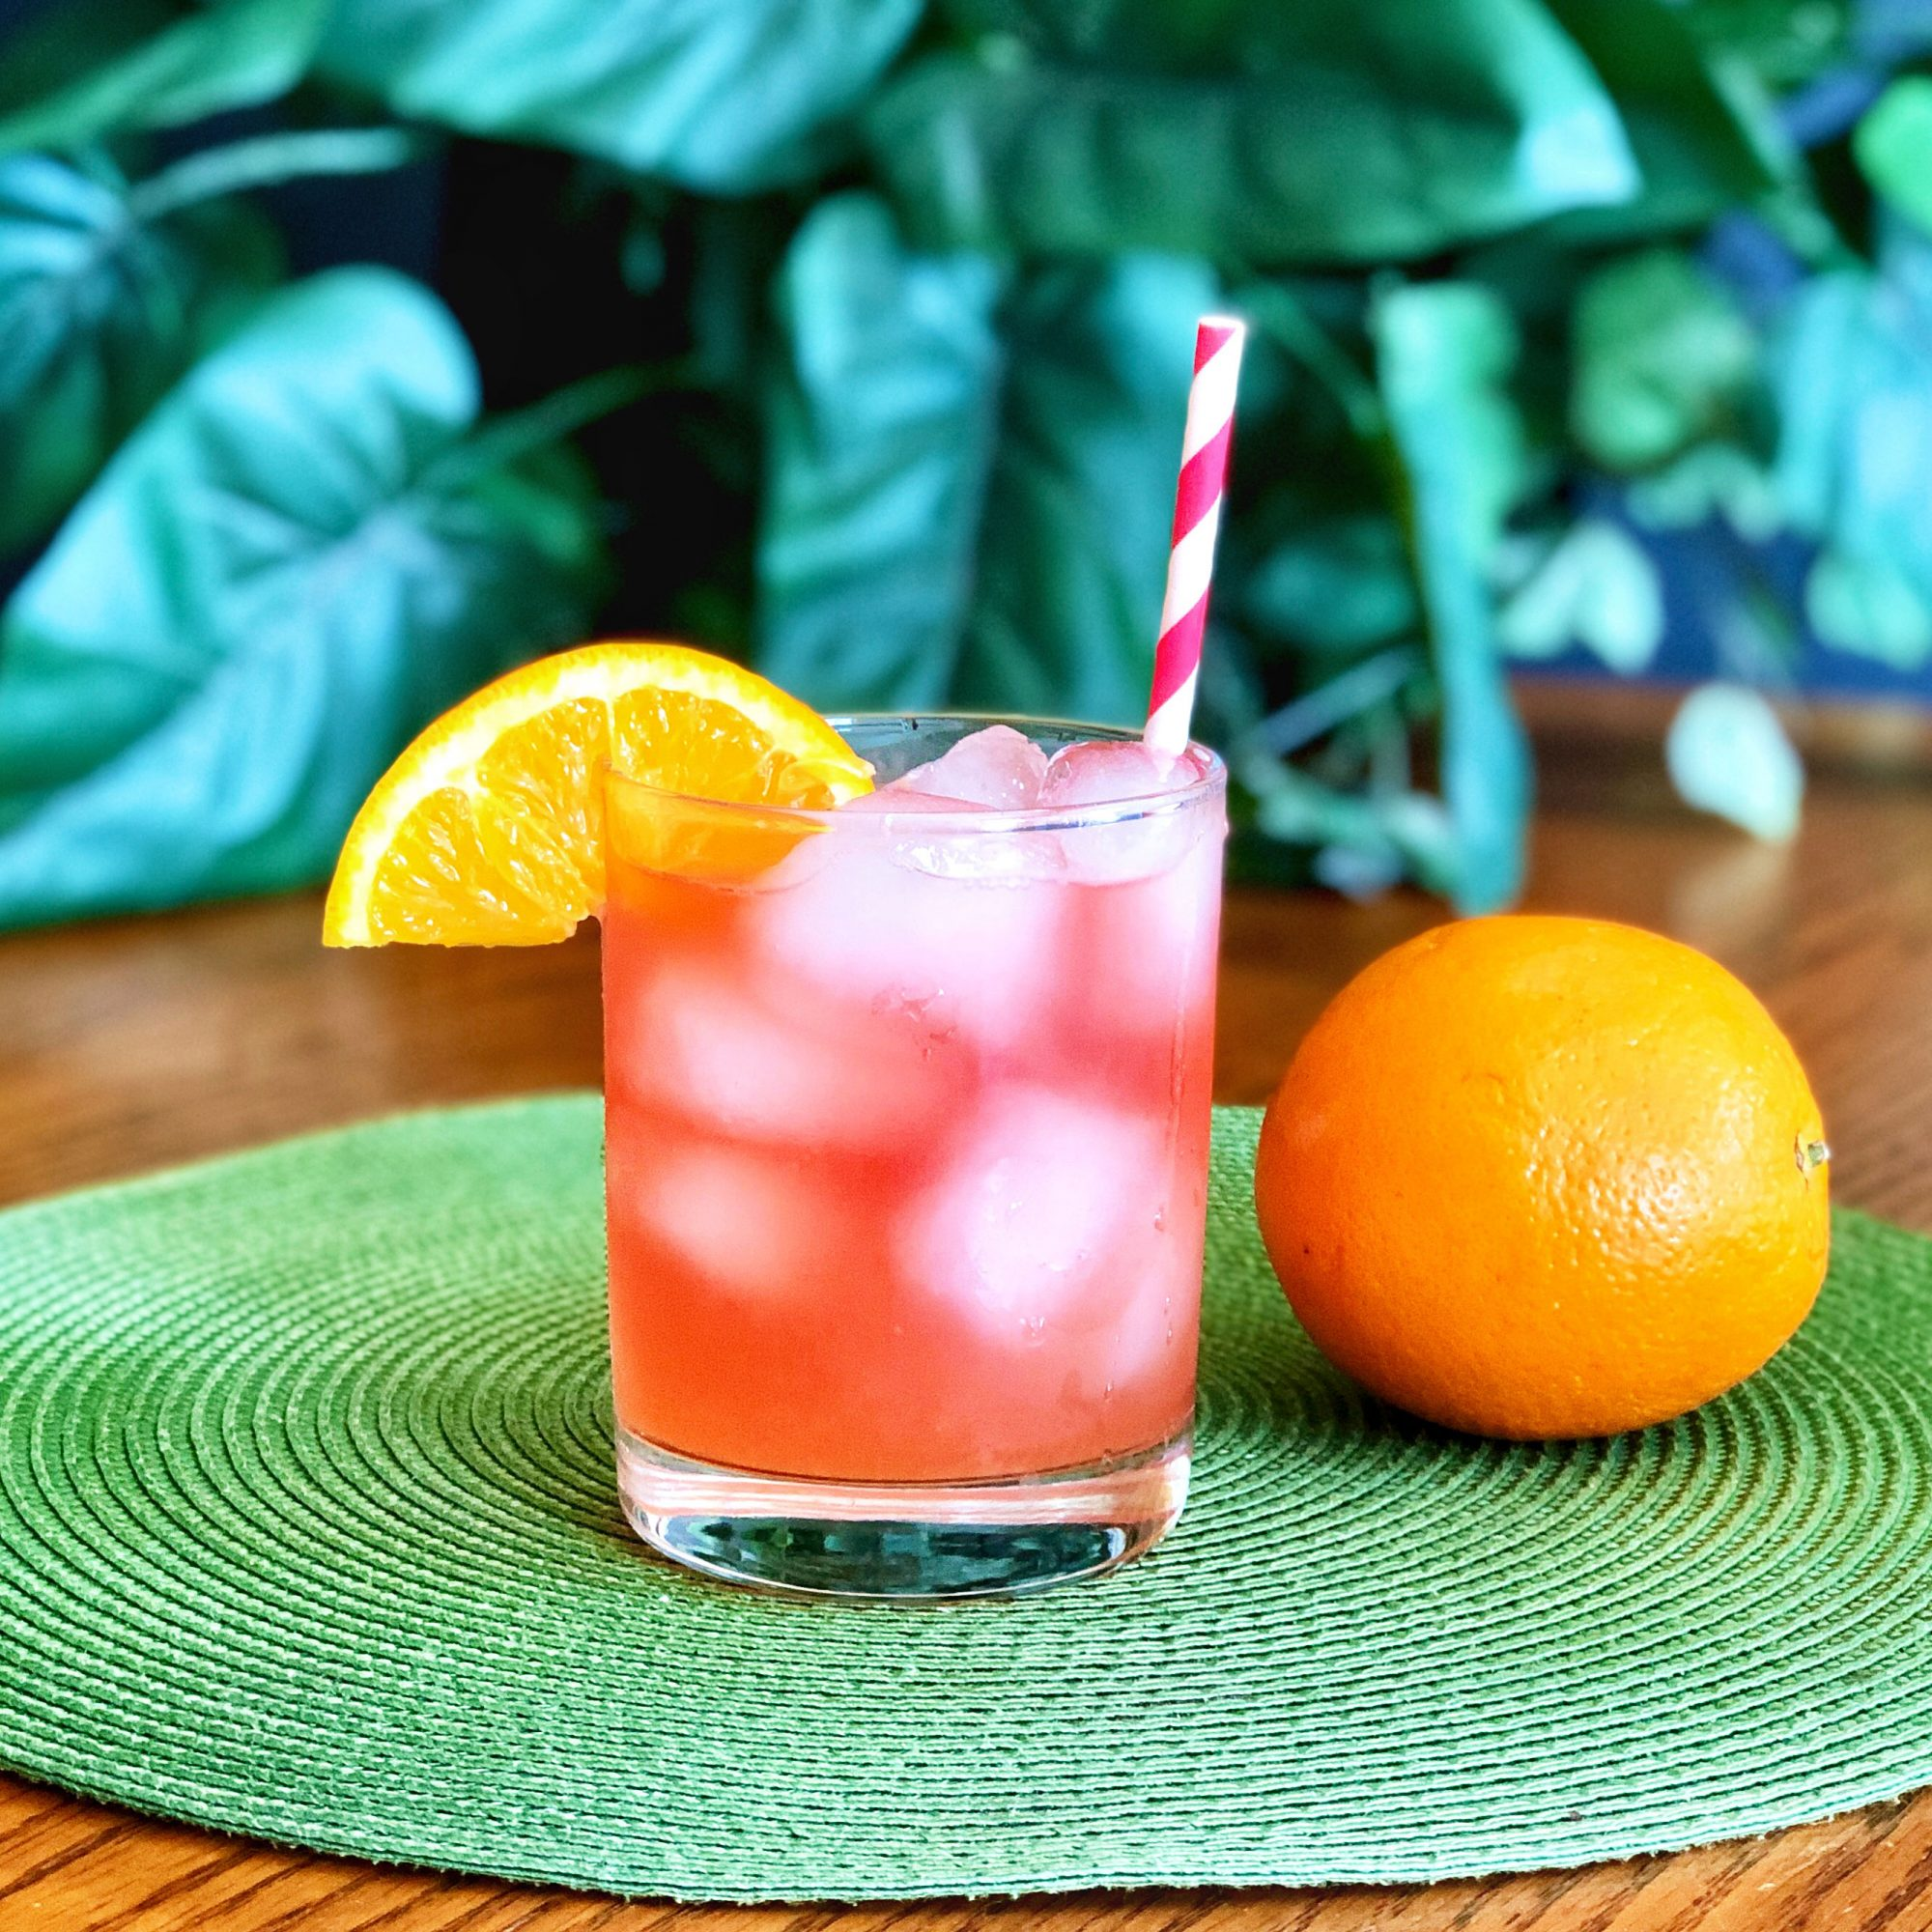 red cocktail in tumbler glass with straw and orange wedge